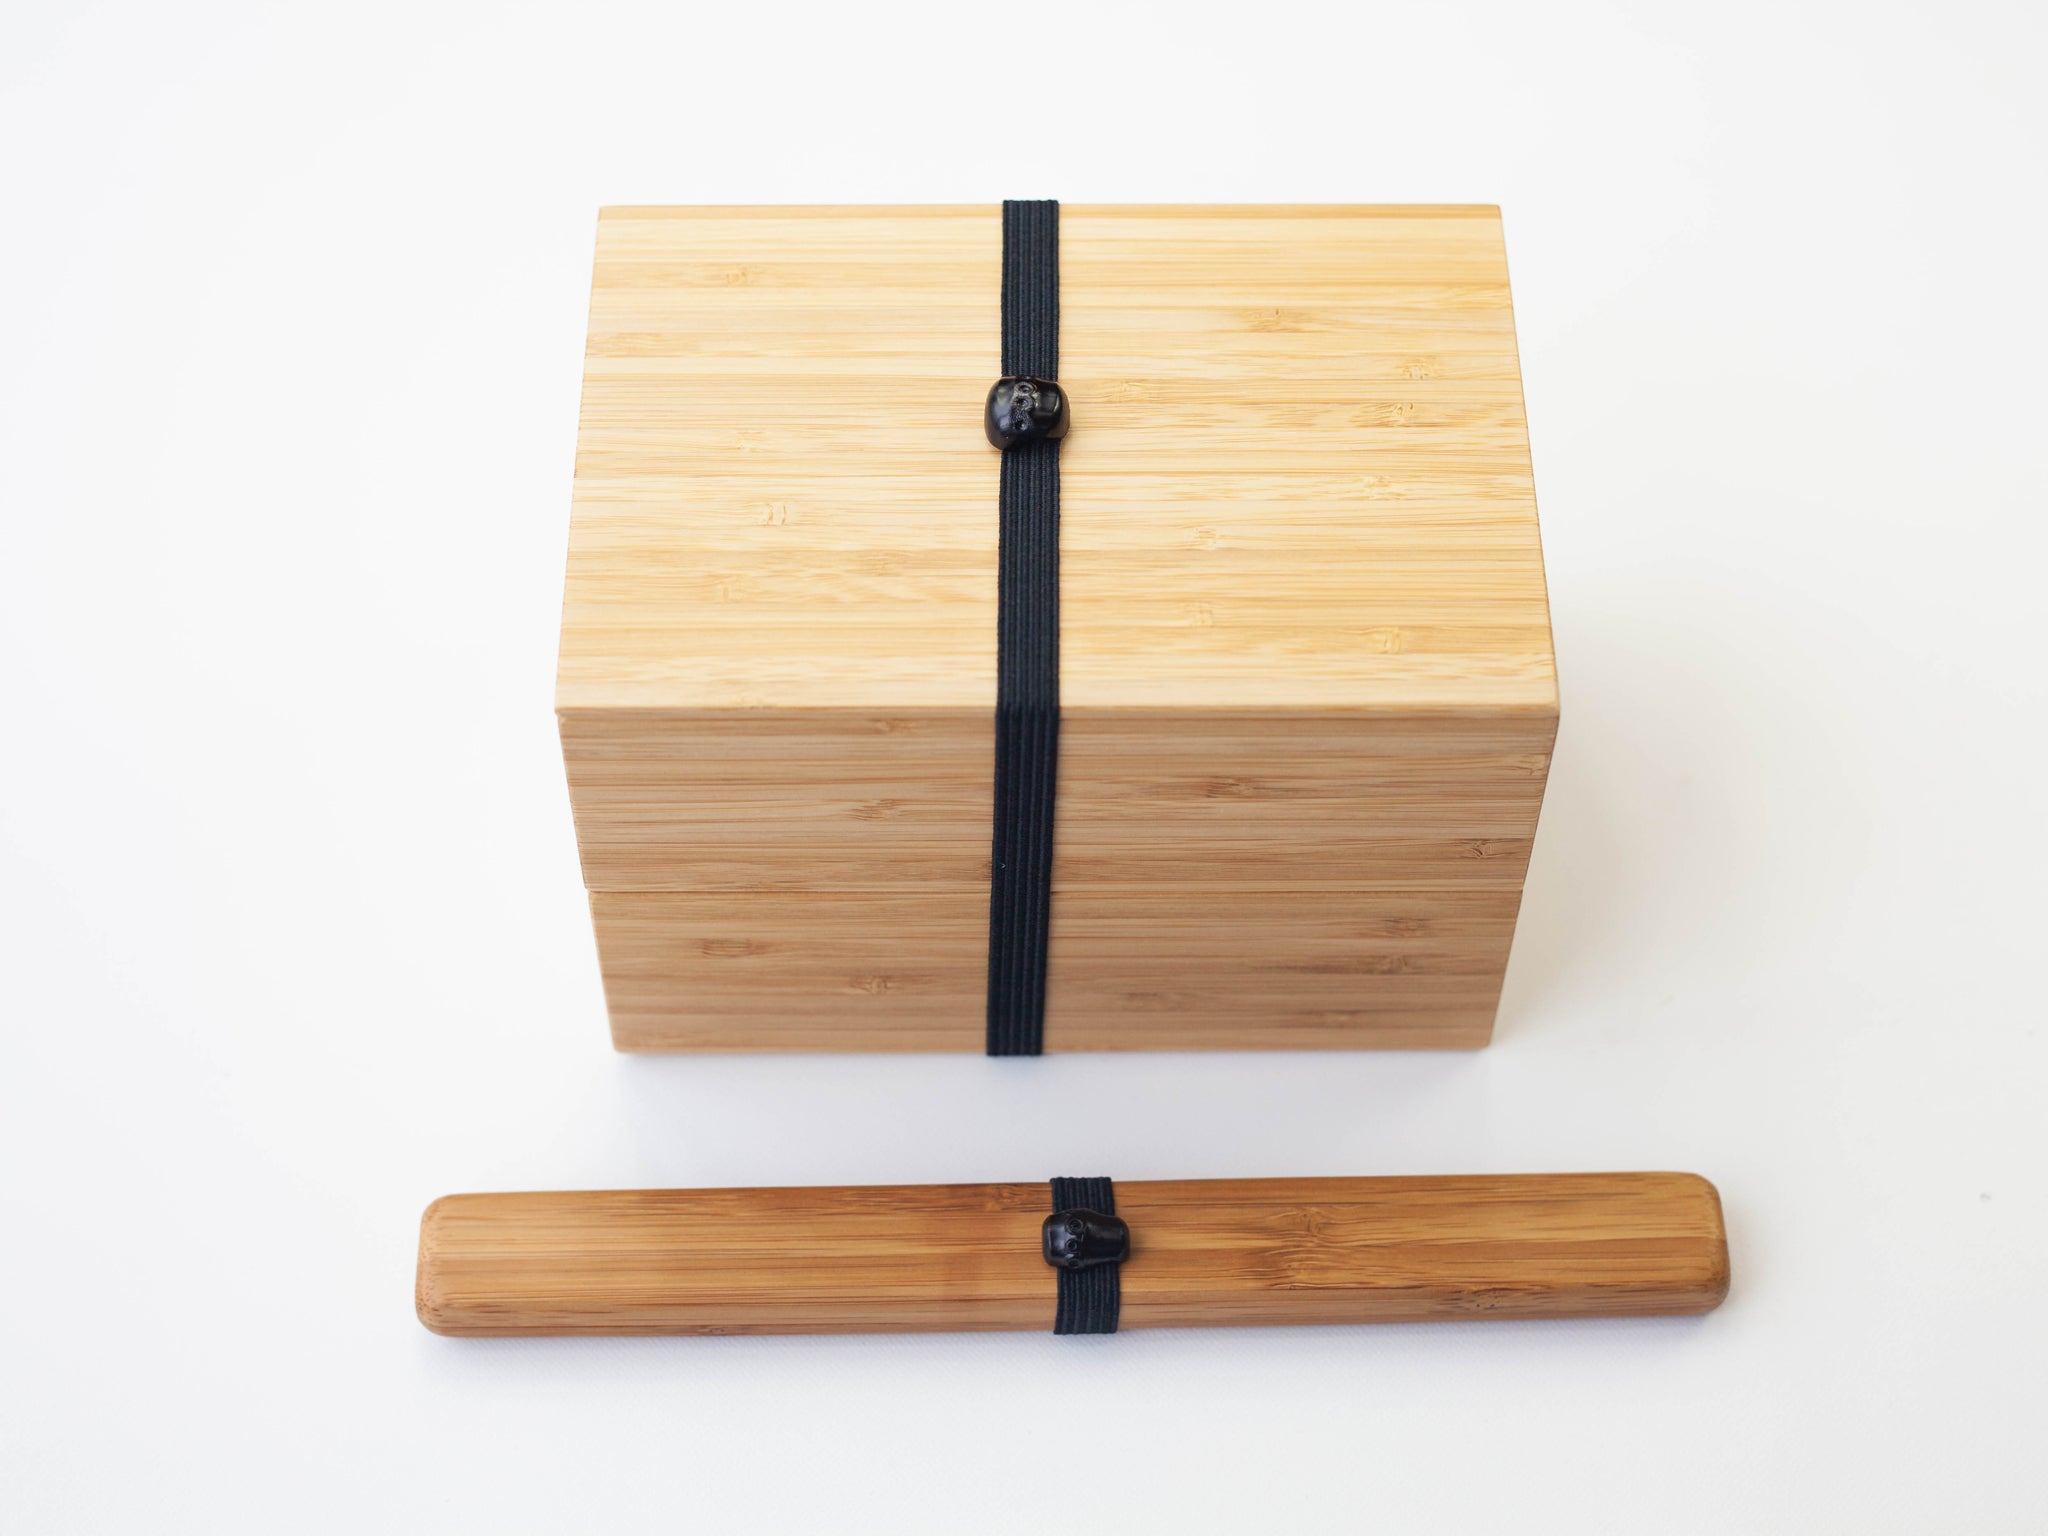 Handmade Take Bako Bento Box | Black Band - Bento&co